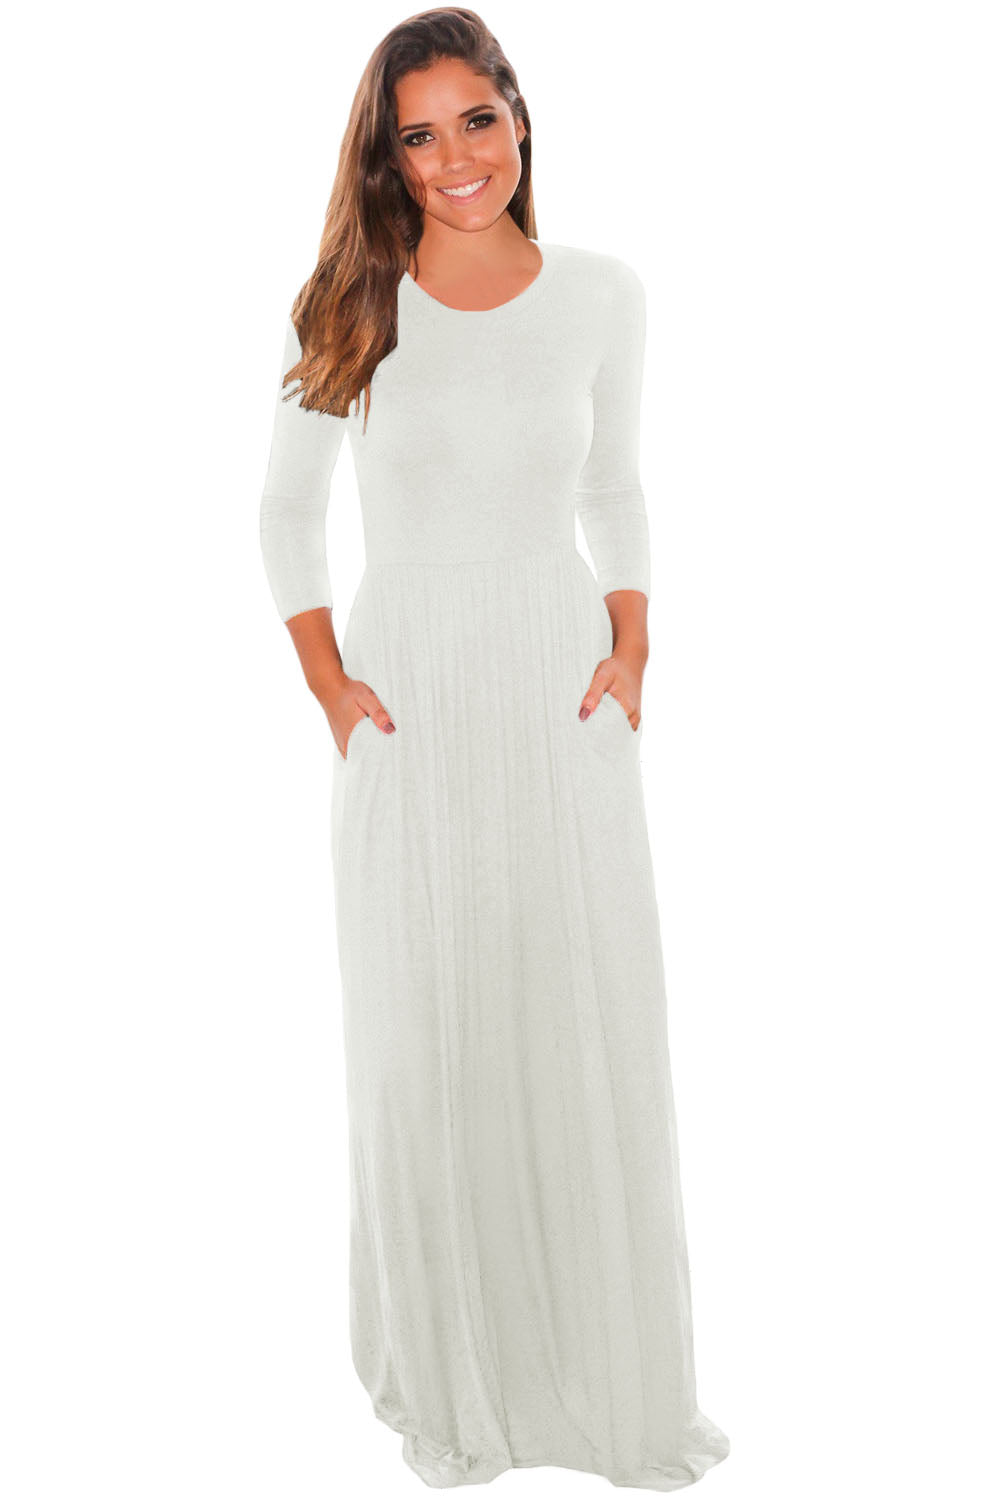 Chicloth White Pocket Design 3 4 Sleeves Maxi Dress